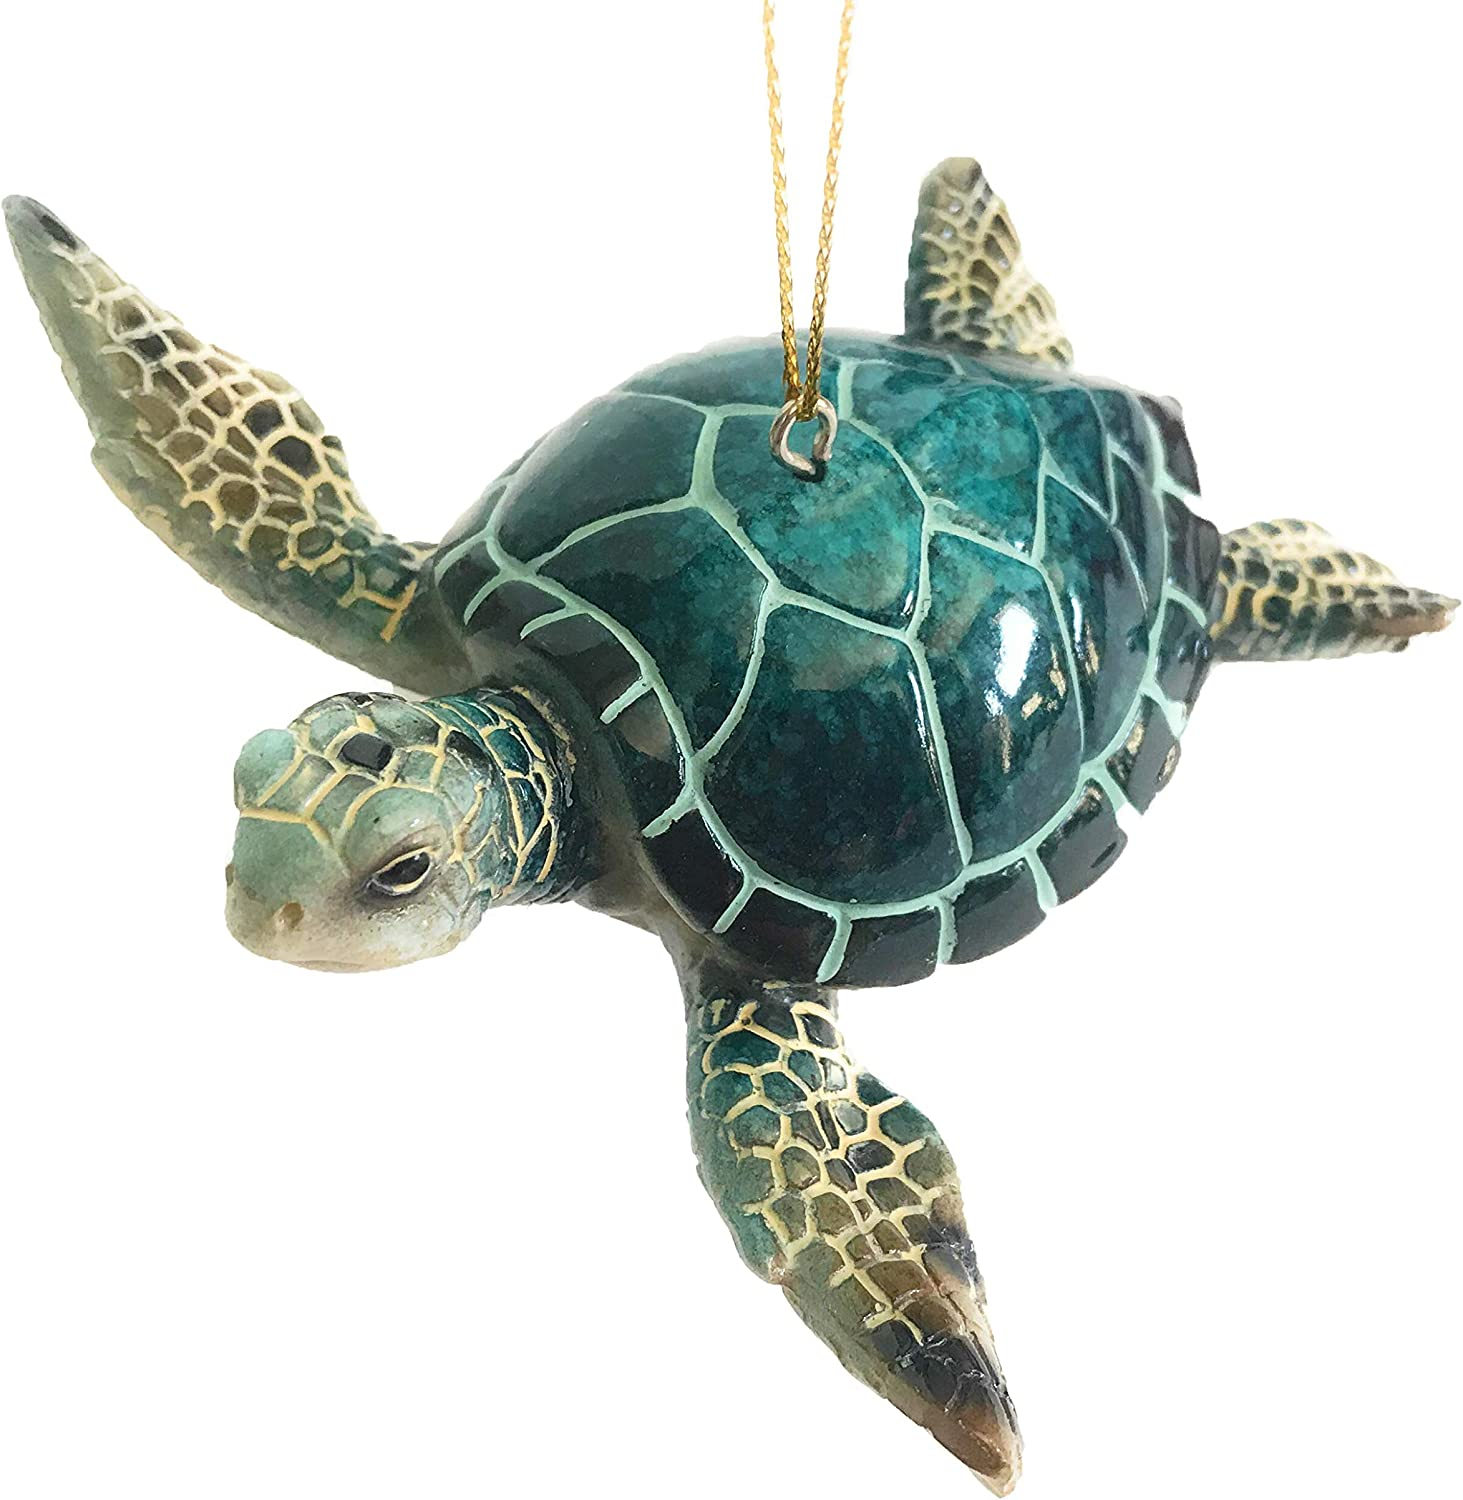 Rengöra Christmas Ornaments - Home Decor - Hand-Painted Blue Sea Turtle - Best for Tree Hanging, Bathroom Decorations, Stocking Stuffers, Scuba Lovers and Ocean Enthusiasts